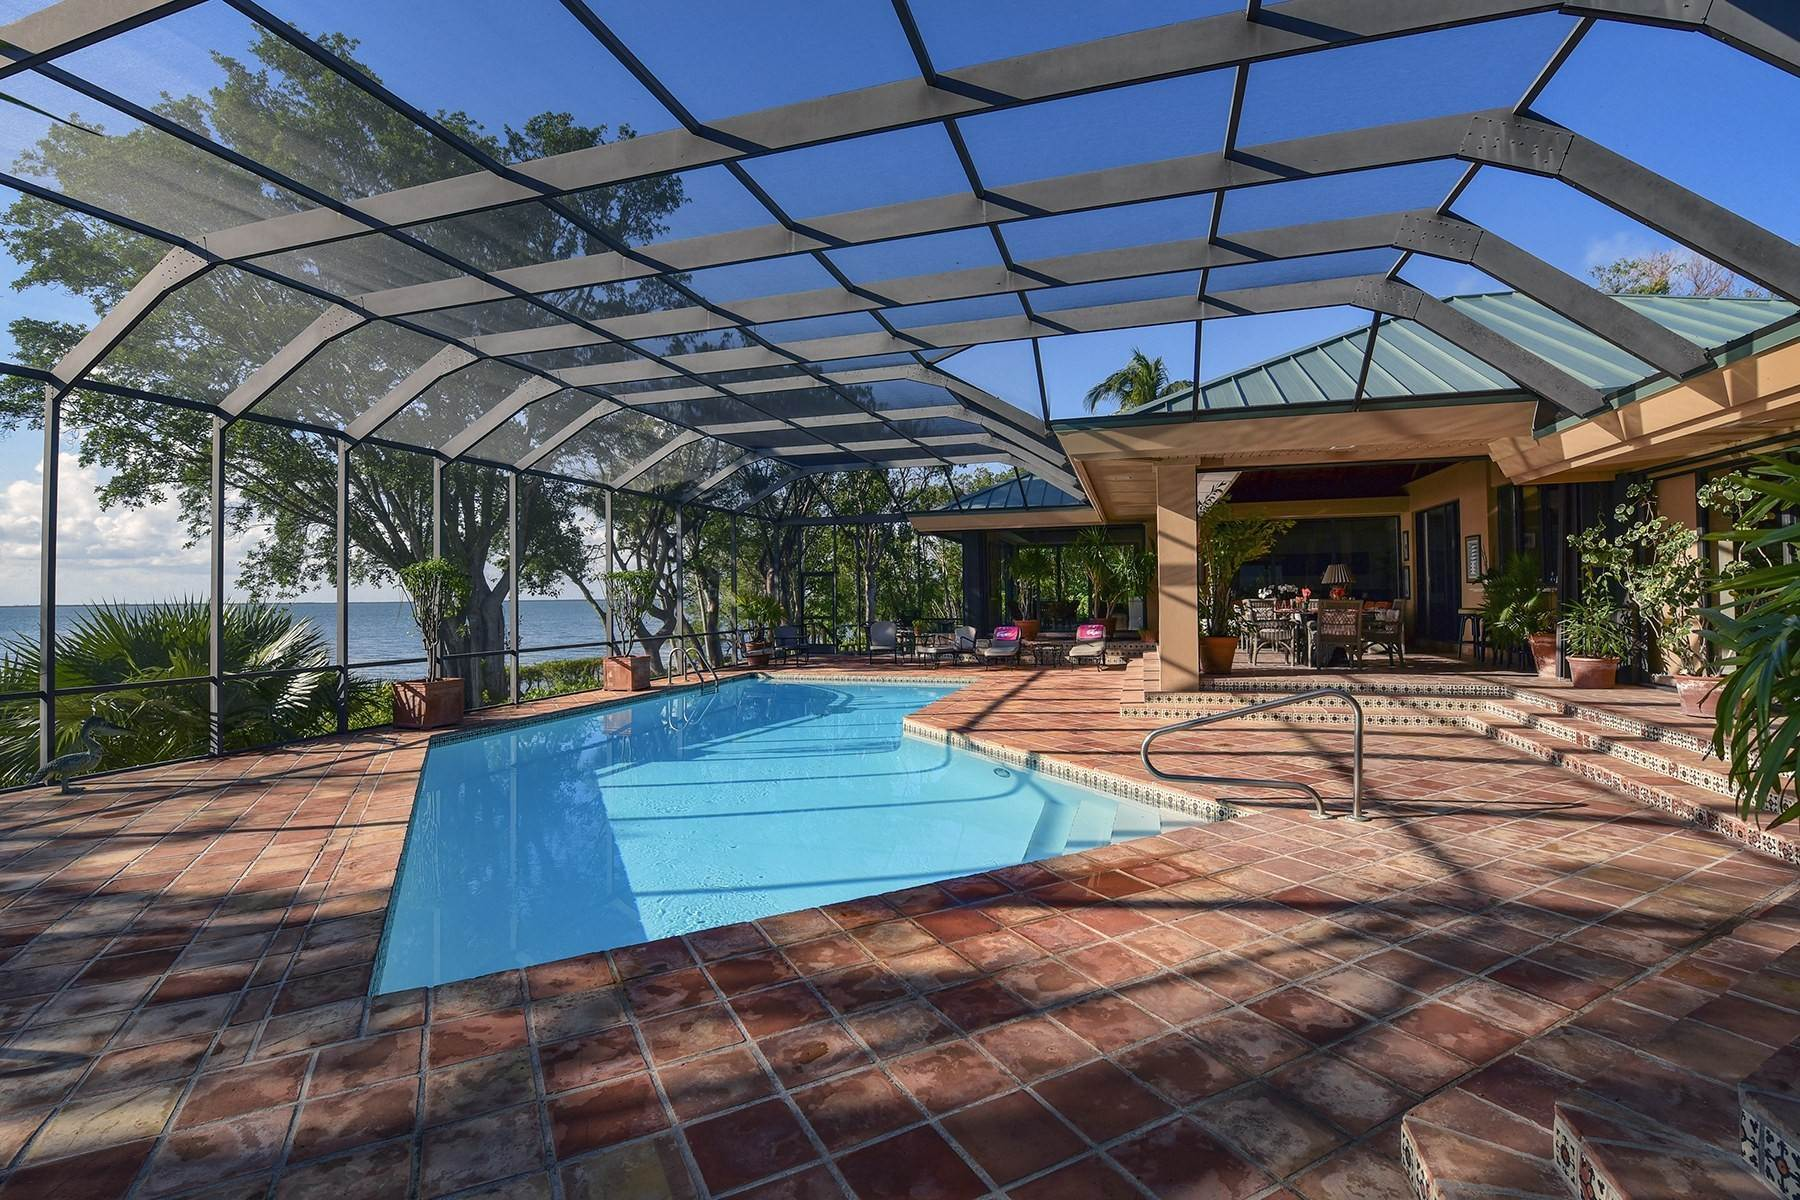 11. Property for Sale at Pumpkin Key - Private Island, Key Largo, FL Key Largo, Florida 33037 United States